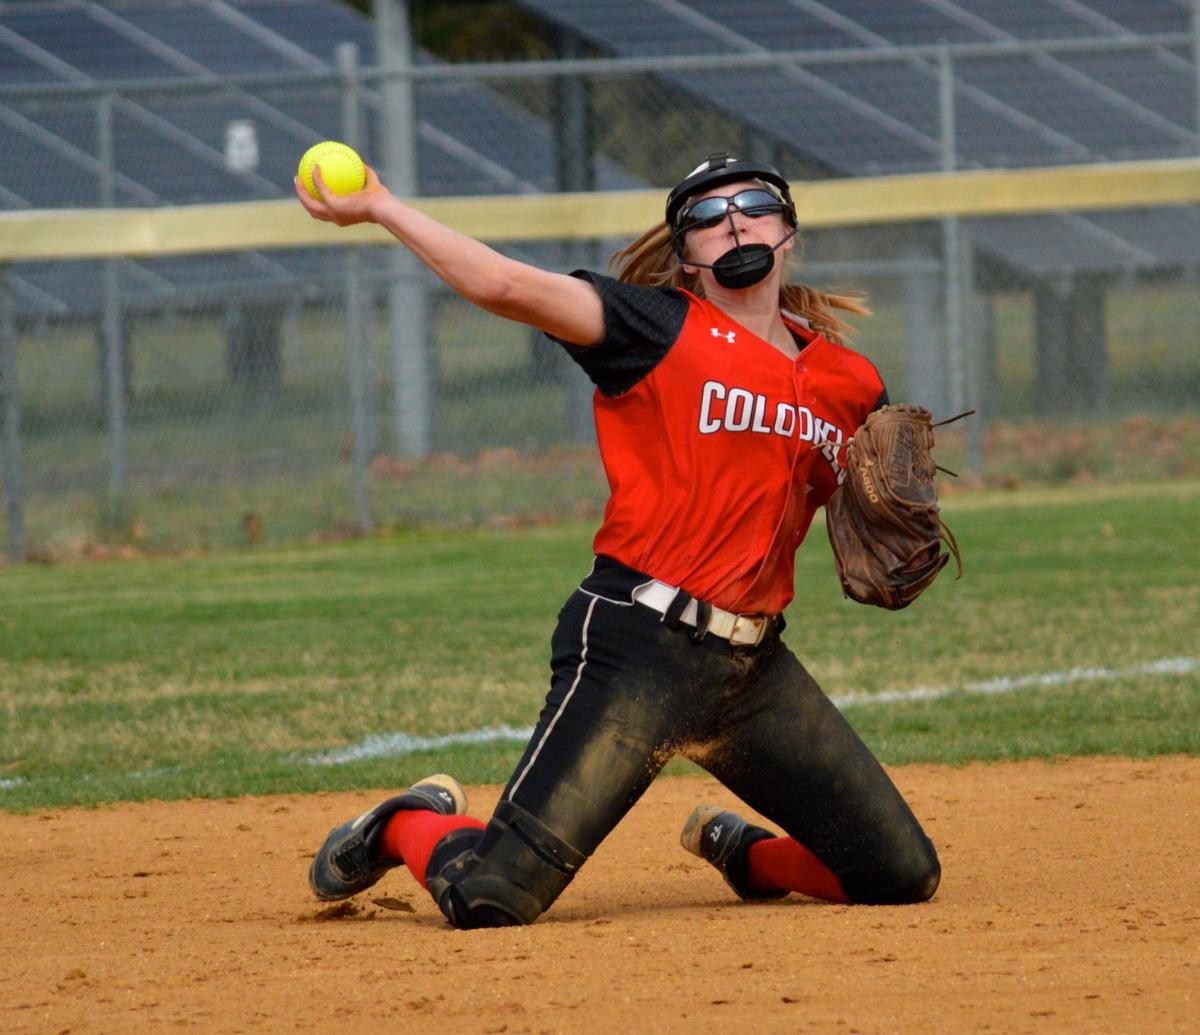 High School Softball: Easton at Colonel Richardson